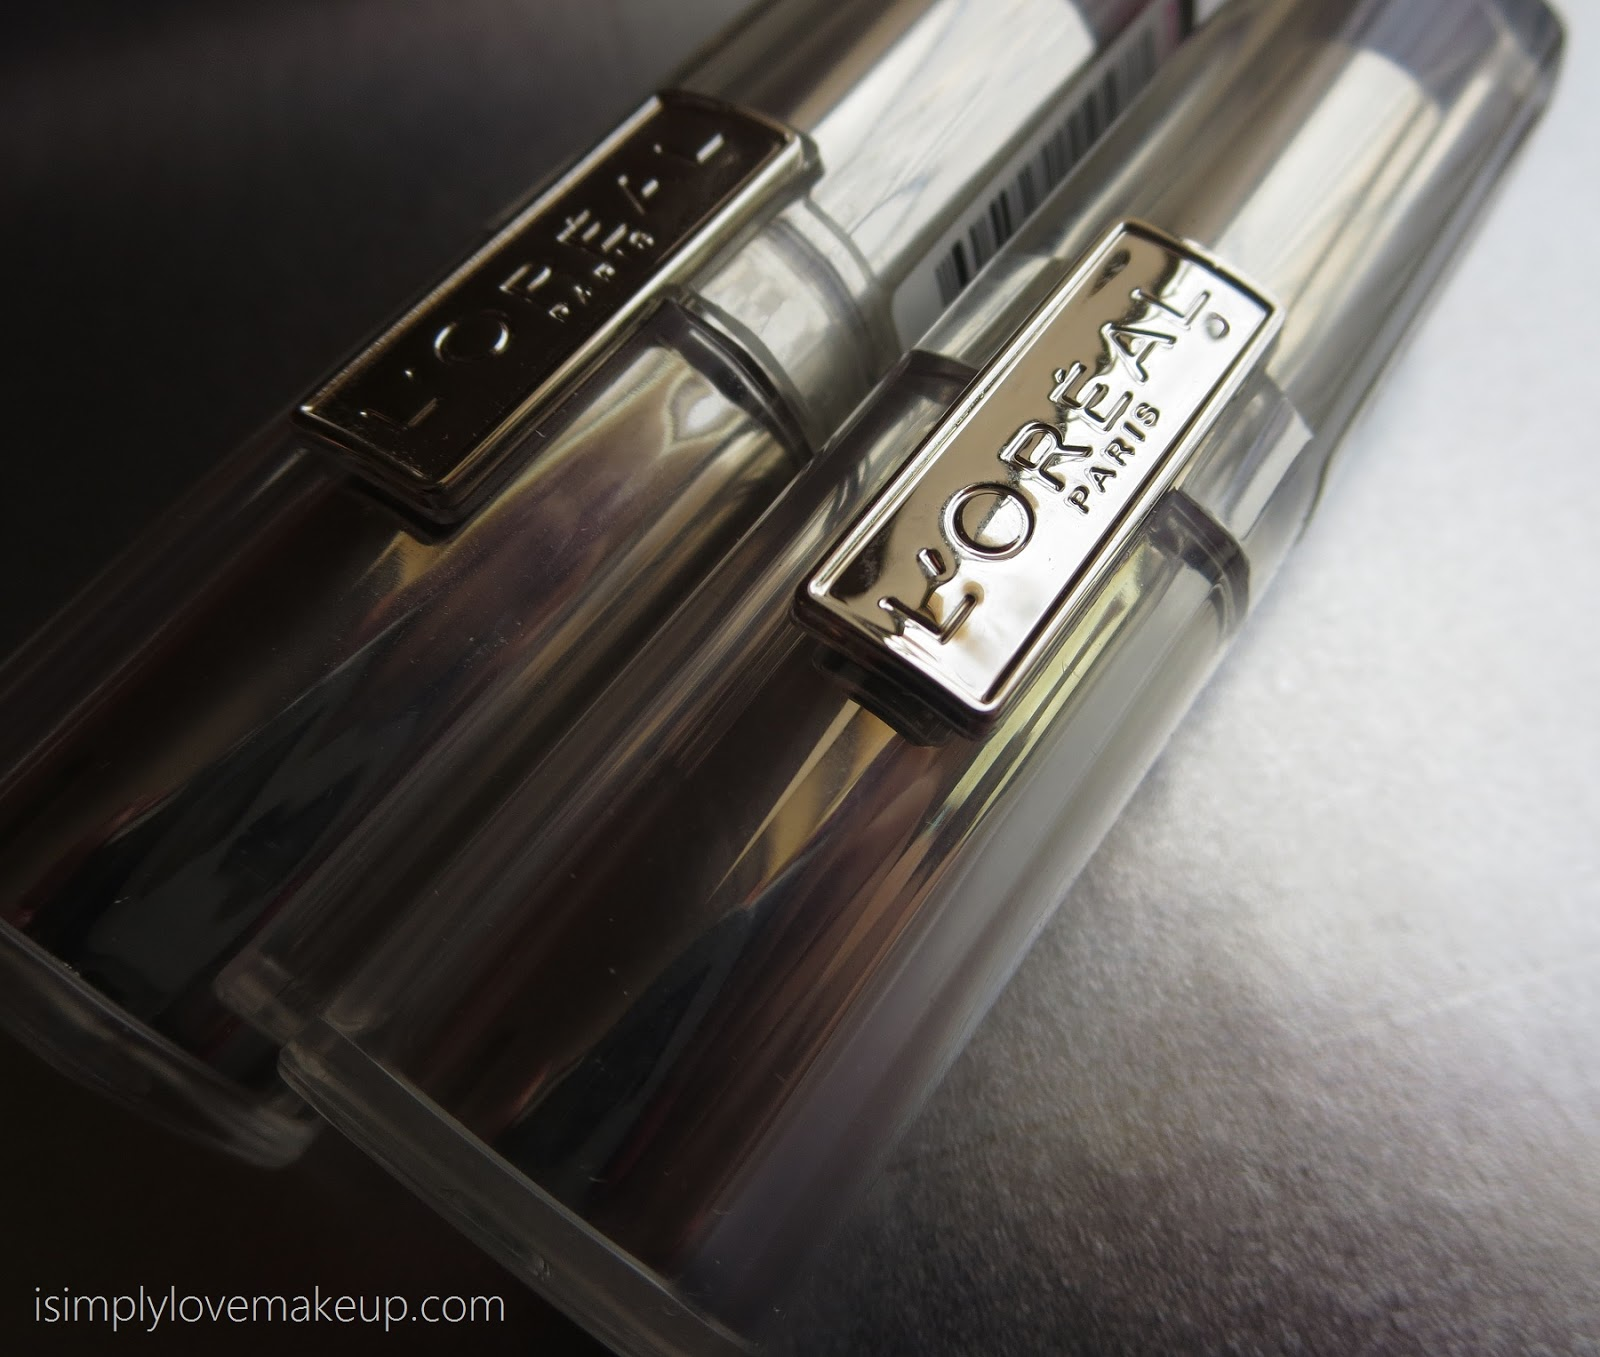 L'Oreal Rouge Caresse Lipsticks Review Swatches